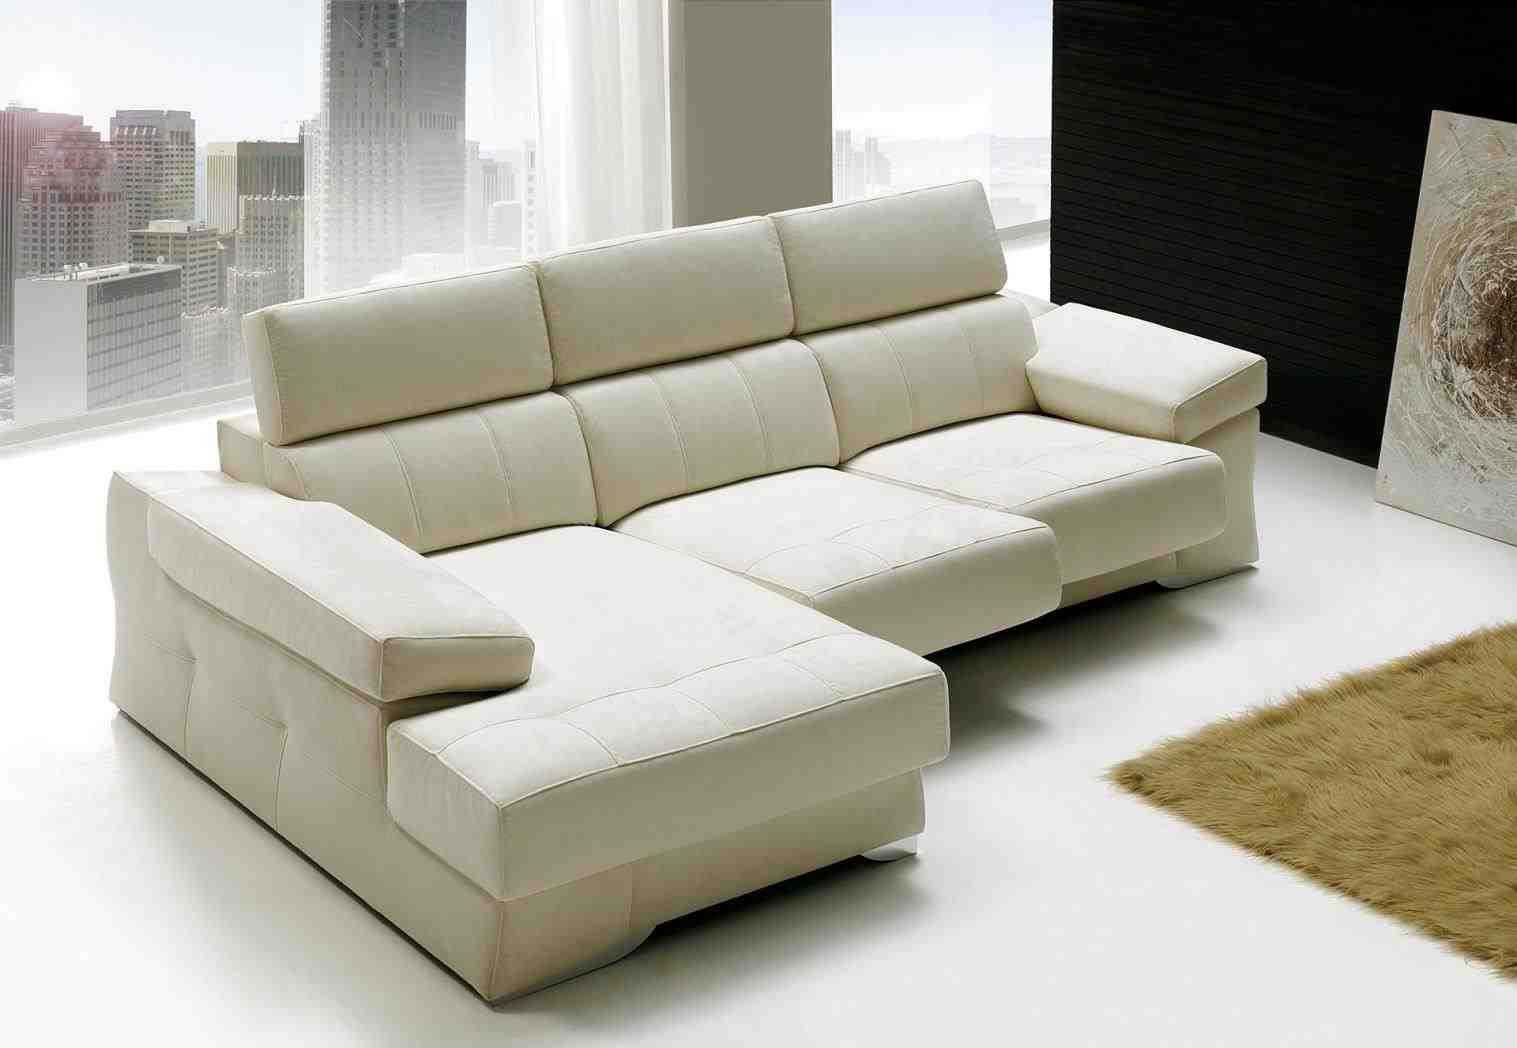 Sofa Chaise Longue 4 Plazas Mejor Best Divani Chaise Longue S Acrylic Tware Of 47  Único sofa Chaise Longue 4 Plazas